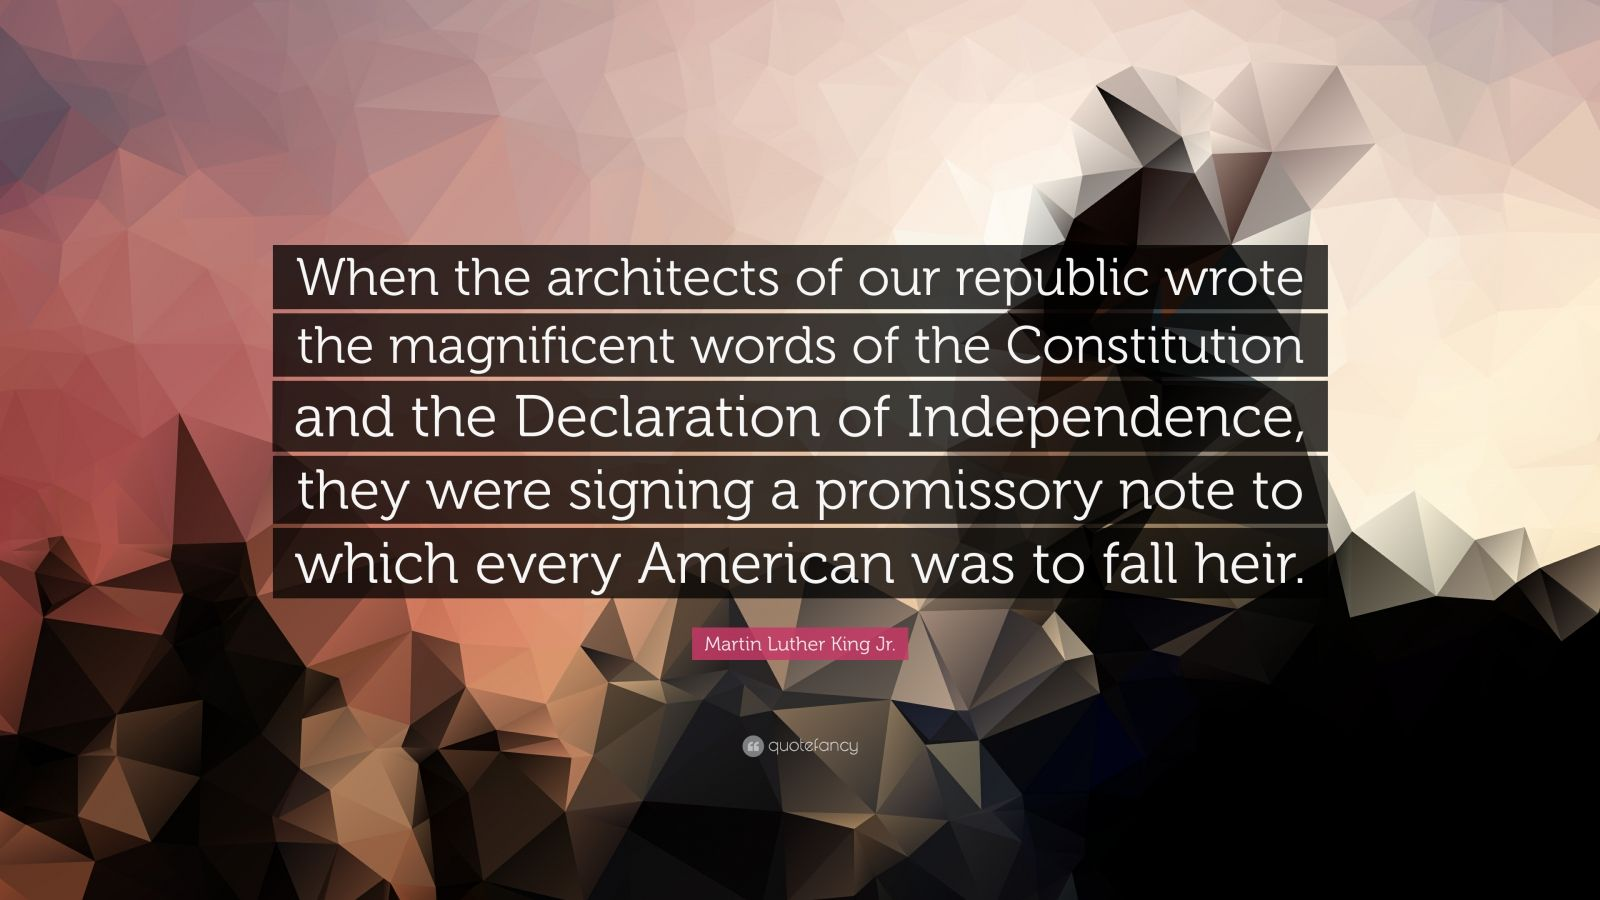 """Martin Luther King Jr. Quote: """"When the architects of our republic wrote the magnificent words of the Constitution and the Declaration of Independence, they were signing a promissory note to which every American was to fall heir."""""""